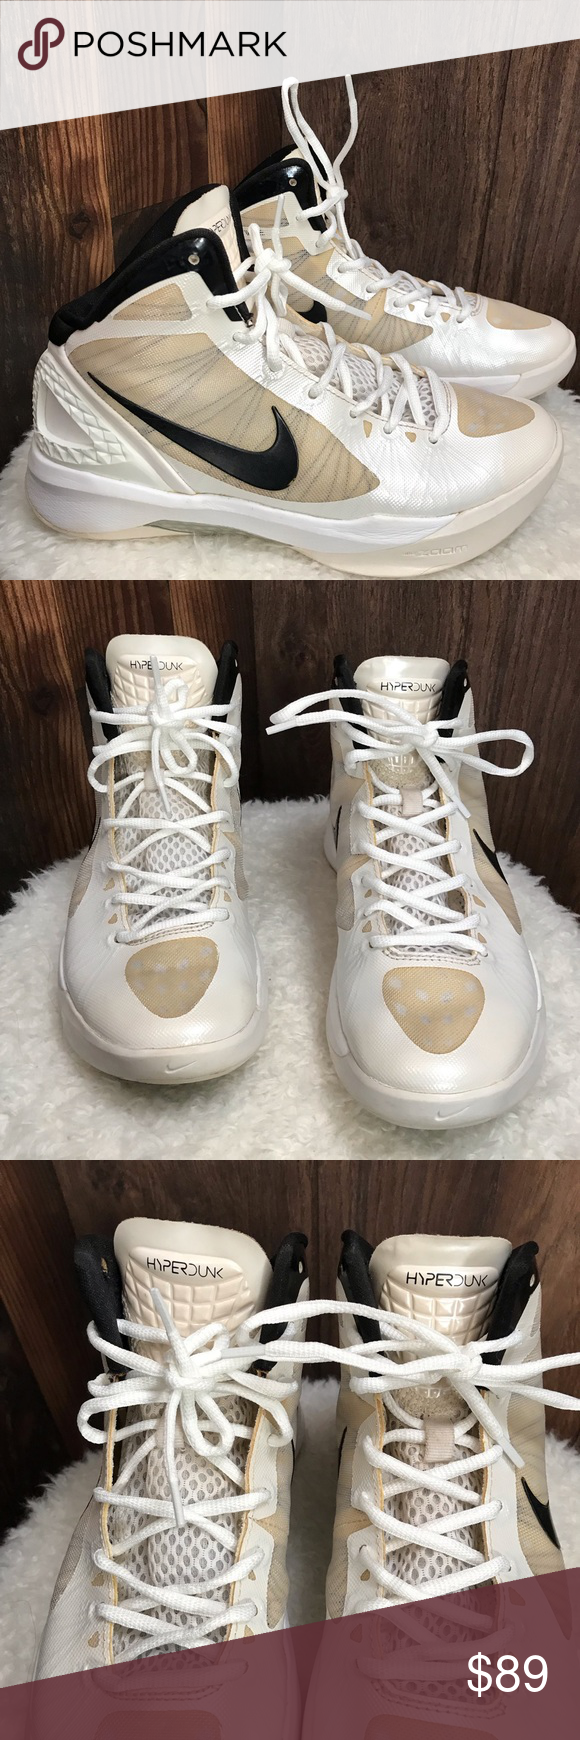 3d32aaf48e55 Nike Womens Zoom Flywire Hyperdunk 2011 Sz 7 These shoes are in amazing  condition! Very lightly used. Nike Womens Zoom Flywire Hyperdunk 2011 Sz 7  White ...